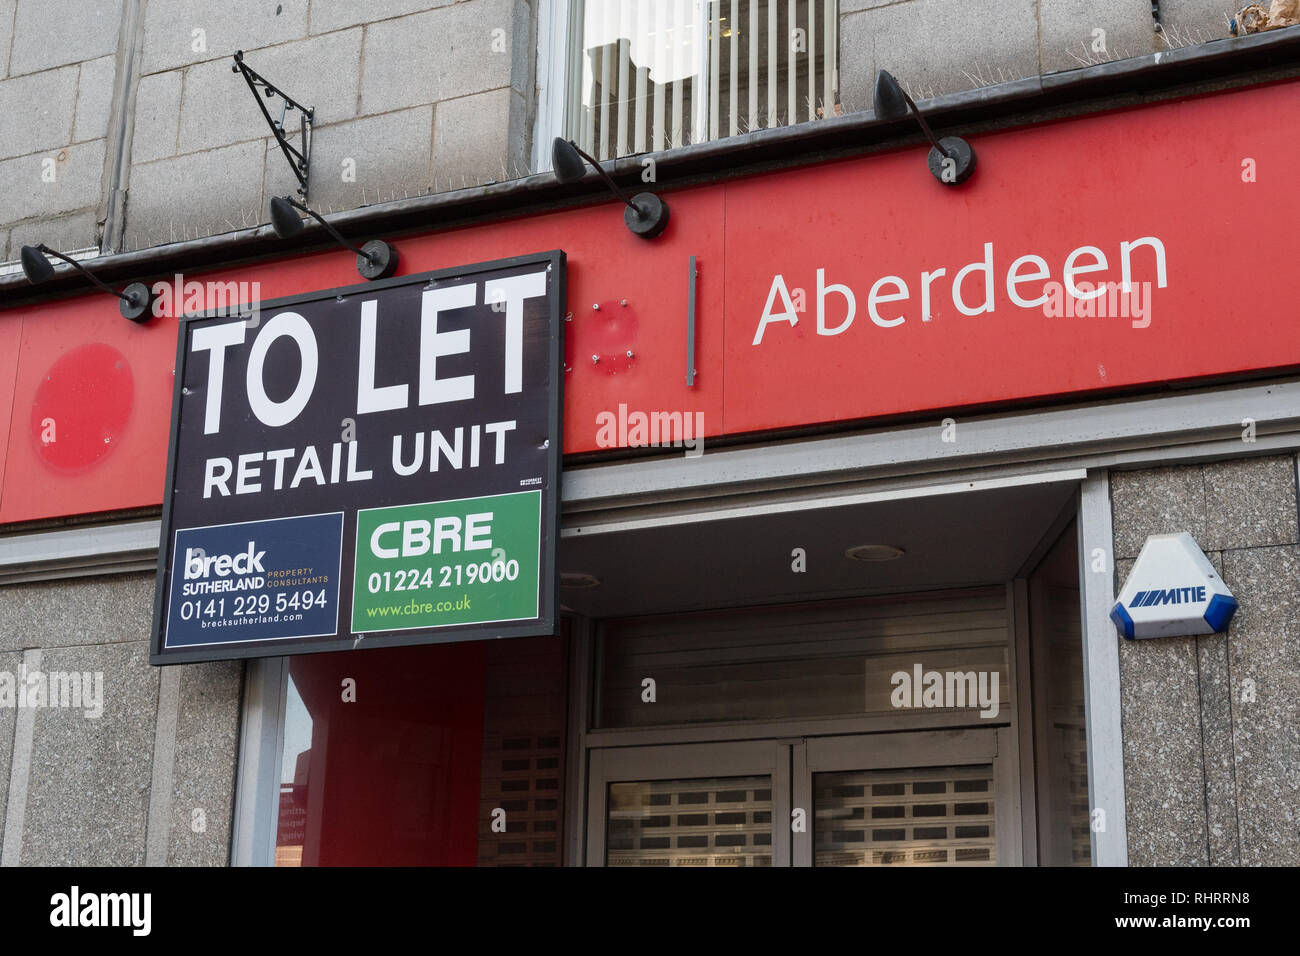 To Let sign on empty commercial retail property in Aberdeen city centre, Scotland, UK - Stock Image